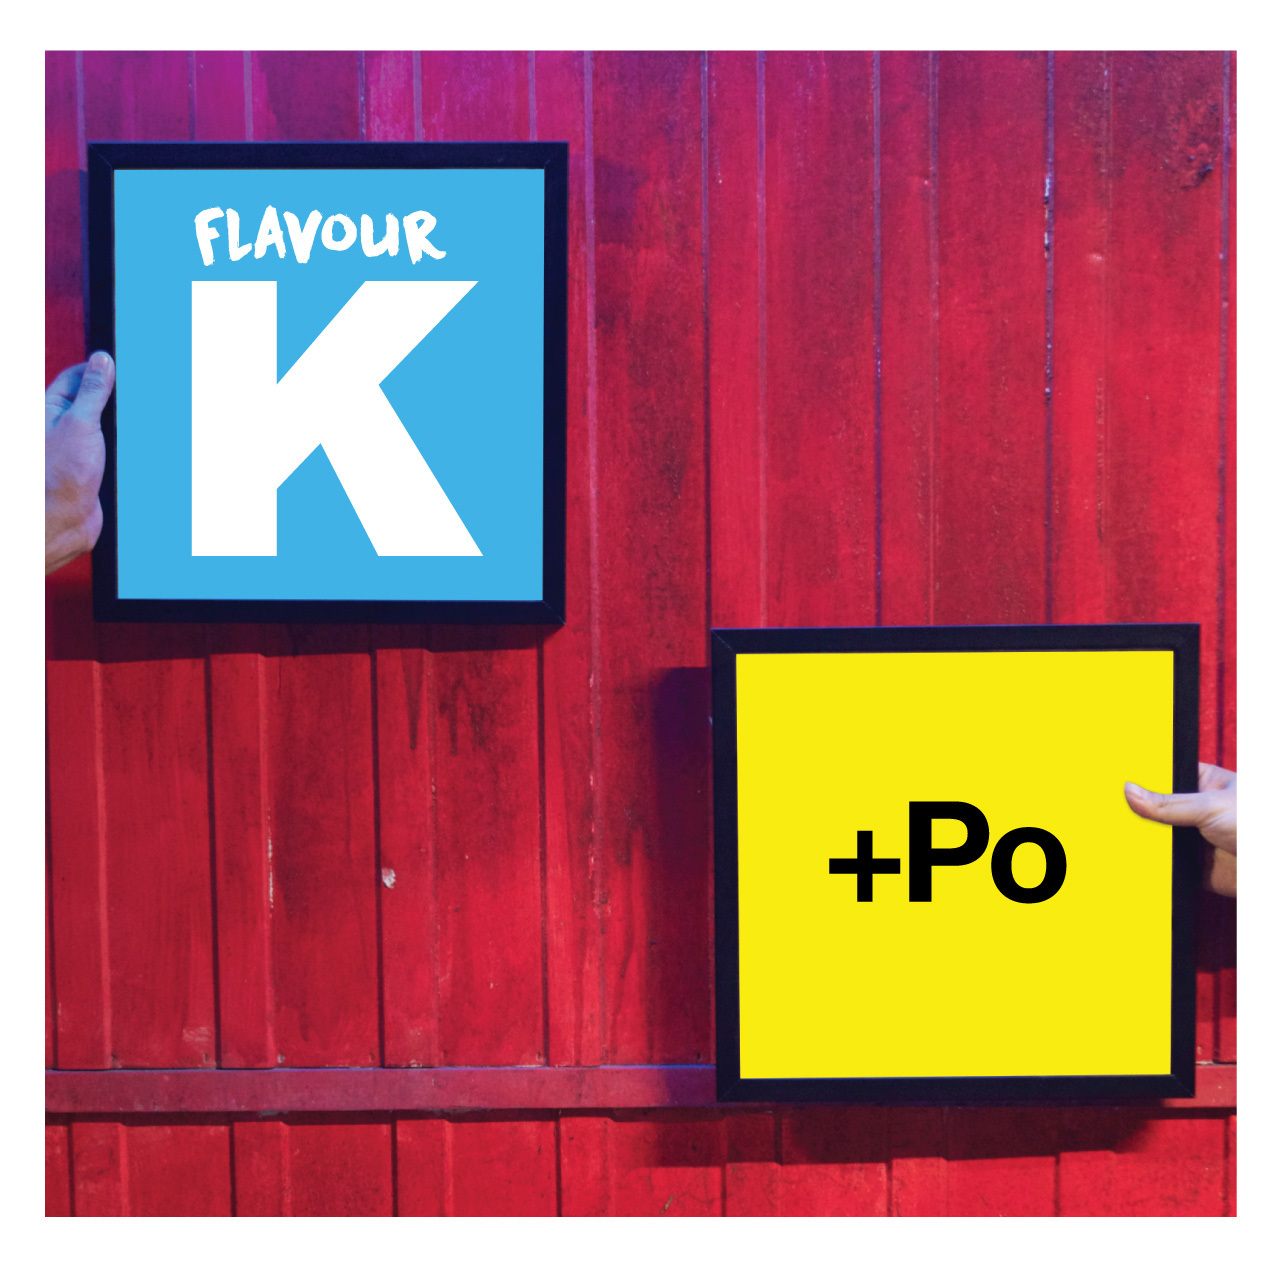 Flavour-K-+Po-Cover_front.jpg